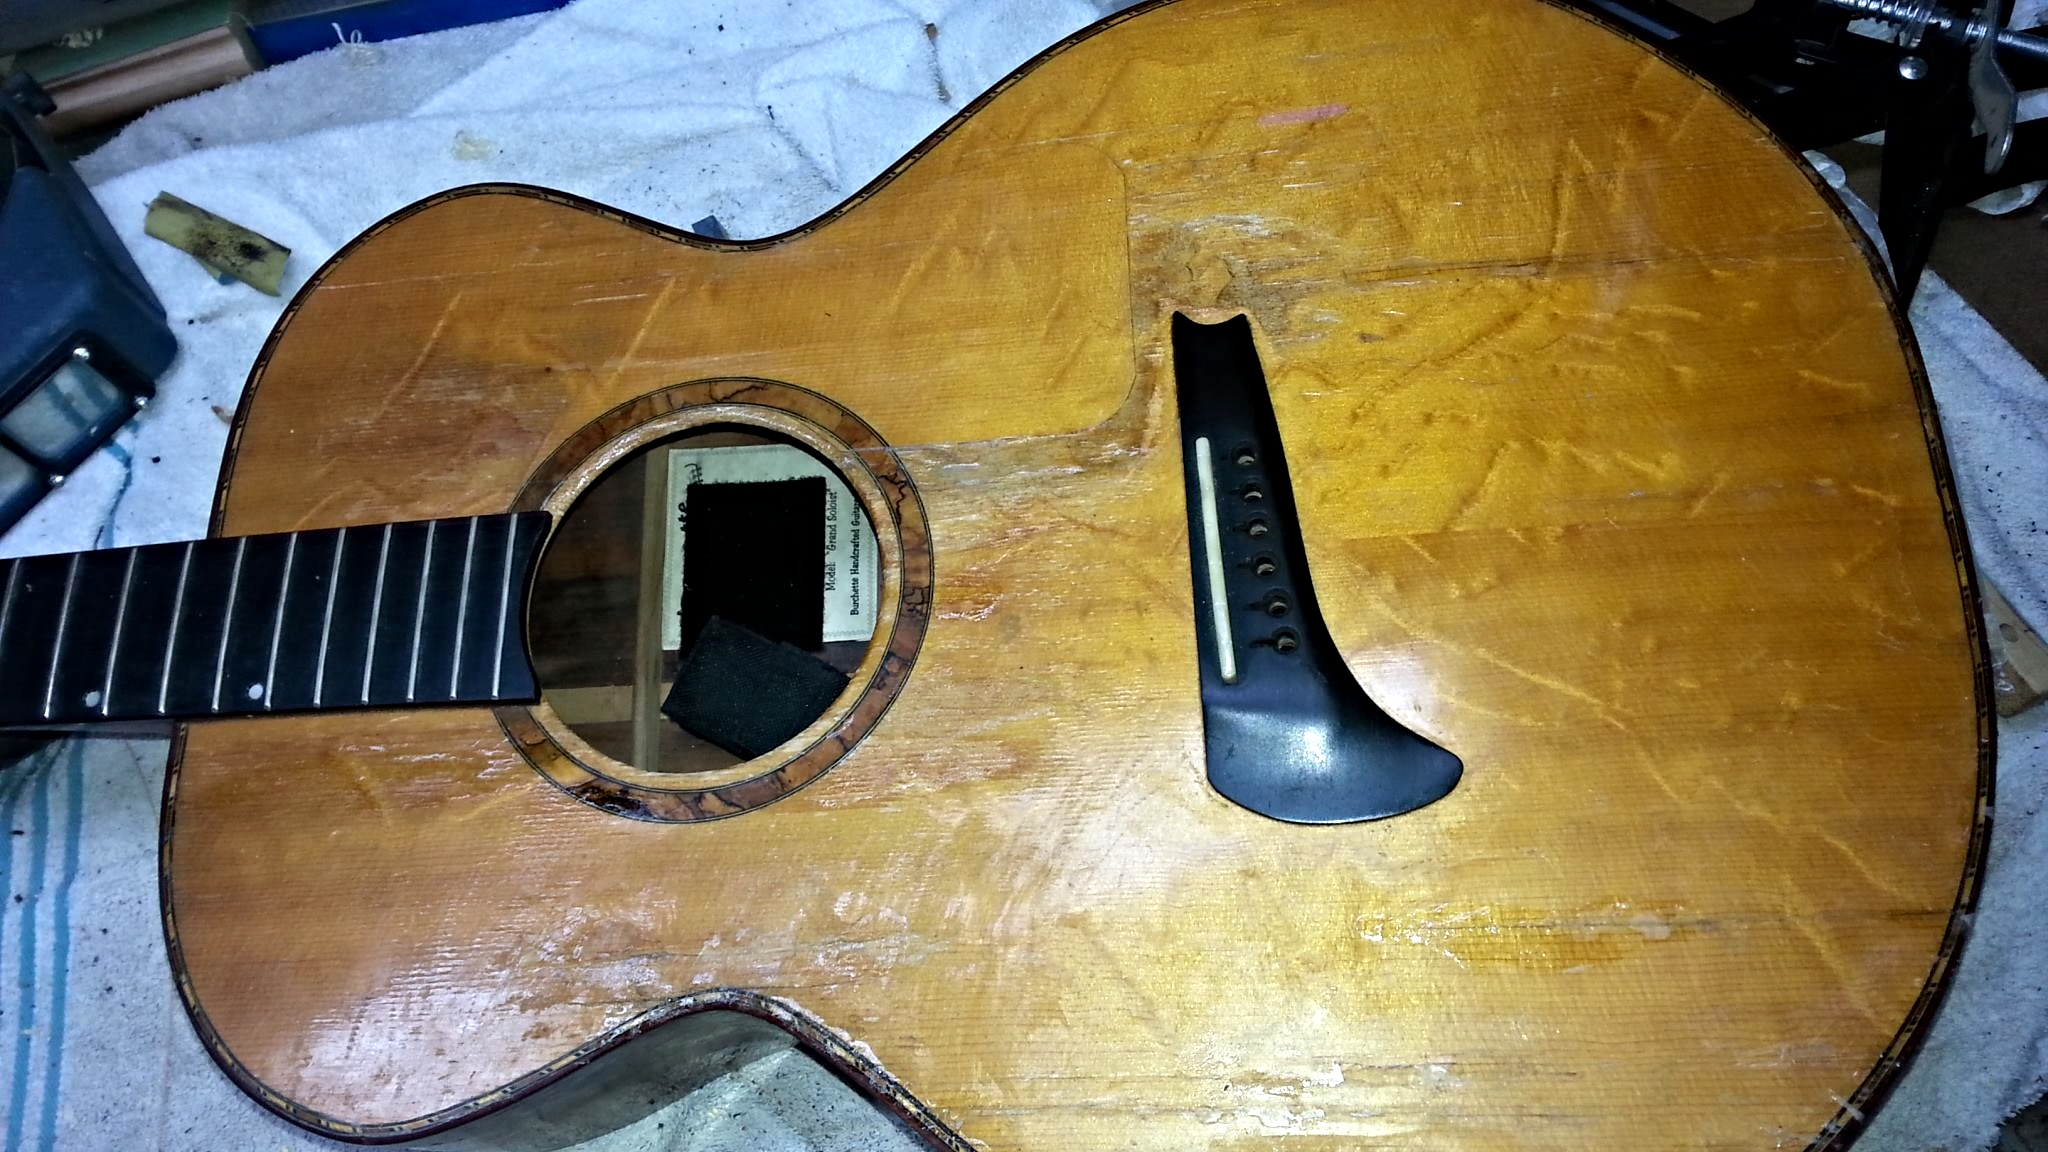 Care for your Burchette Guitar because sometimes love hurts...